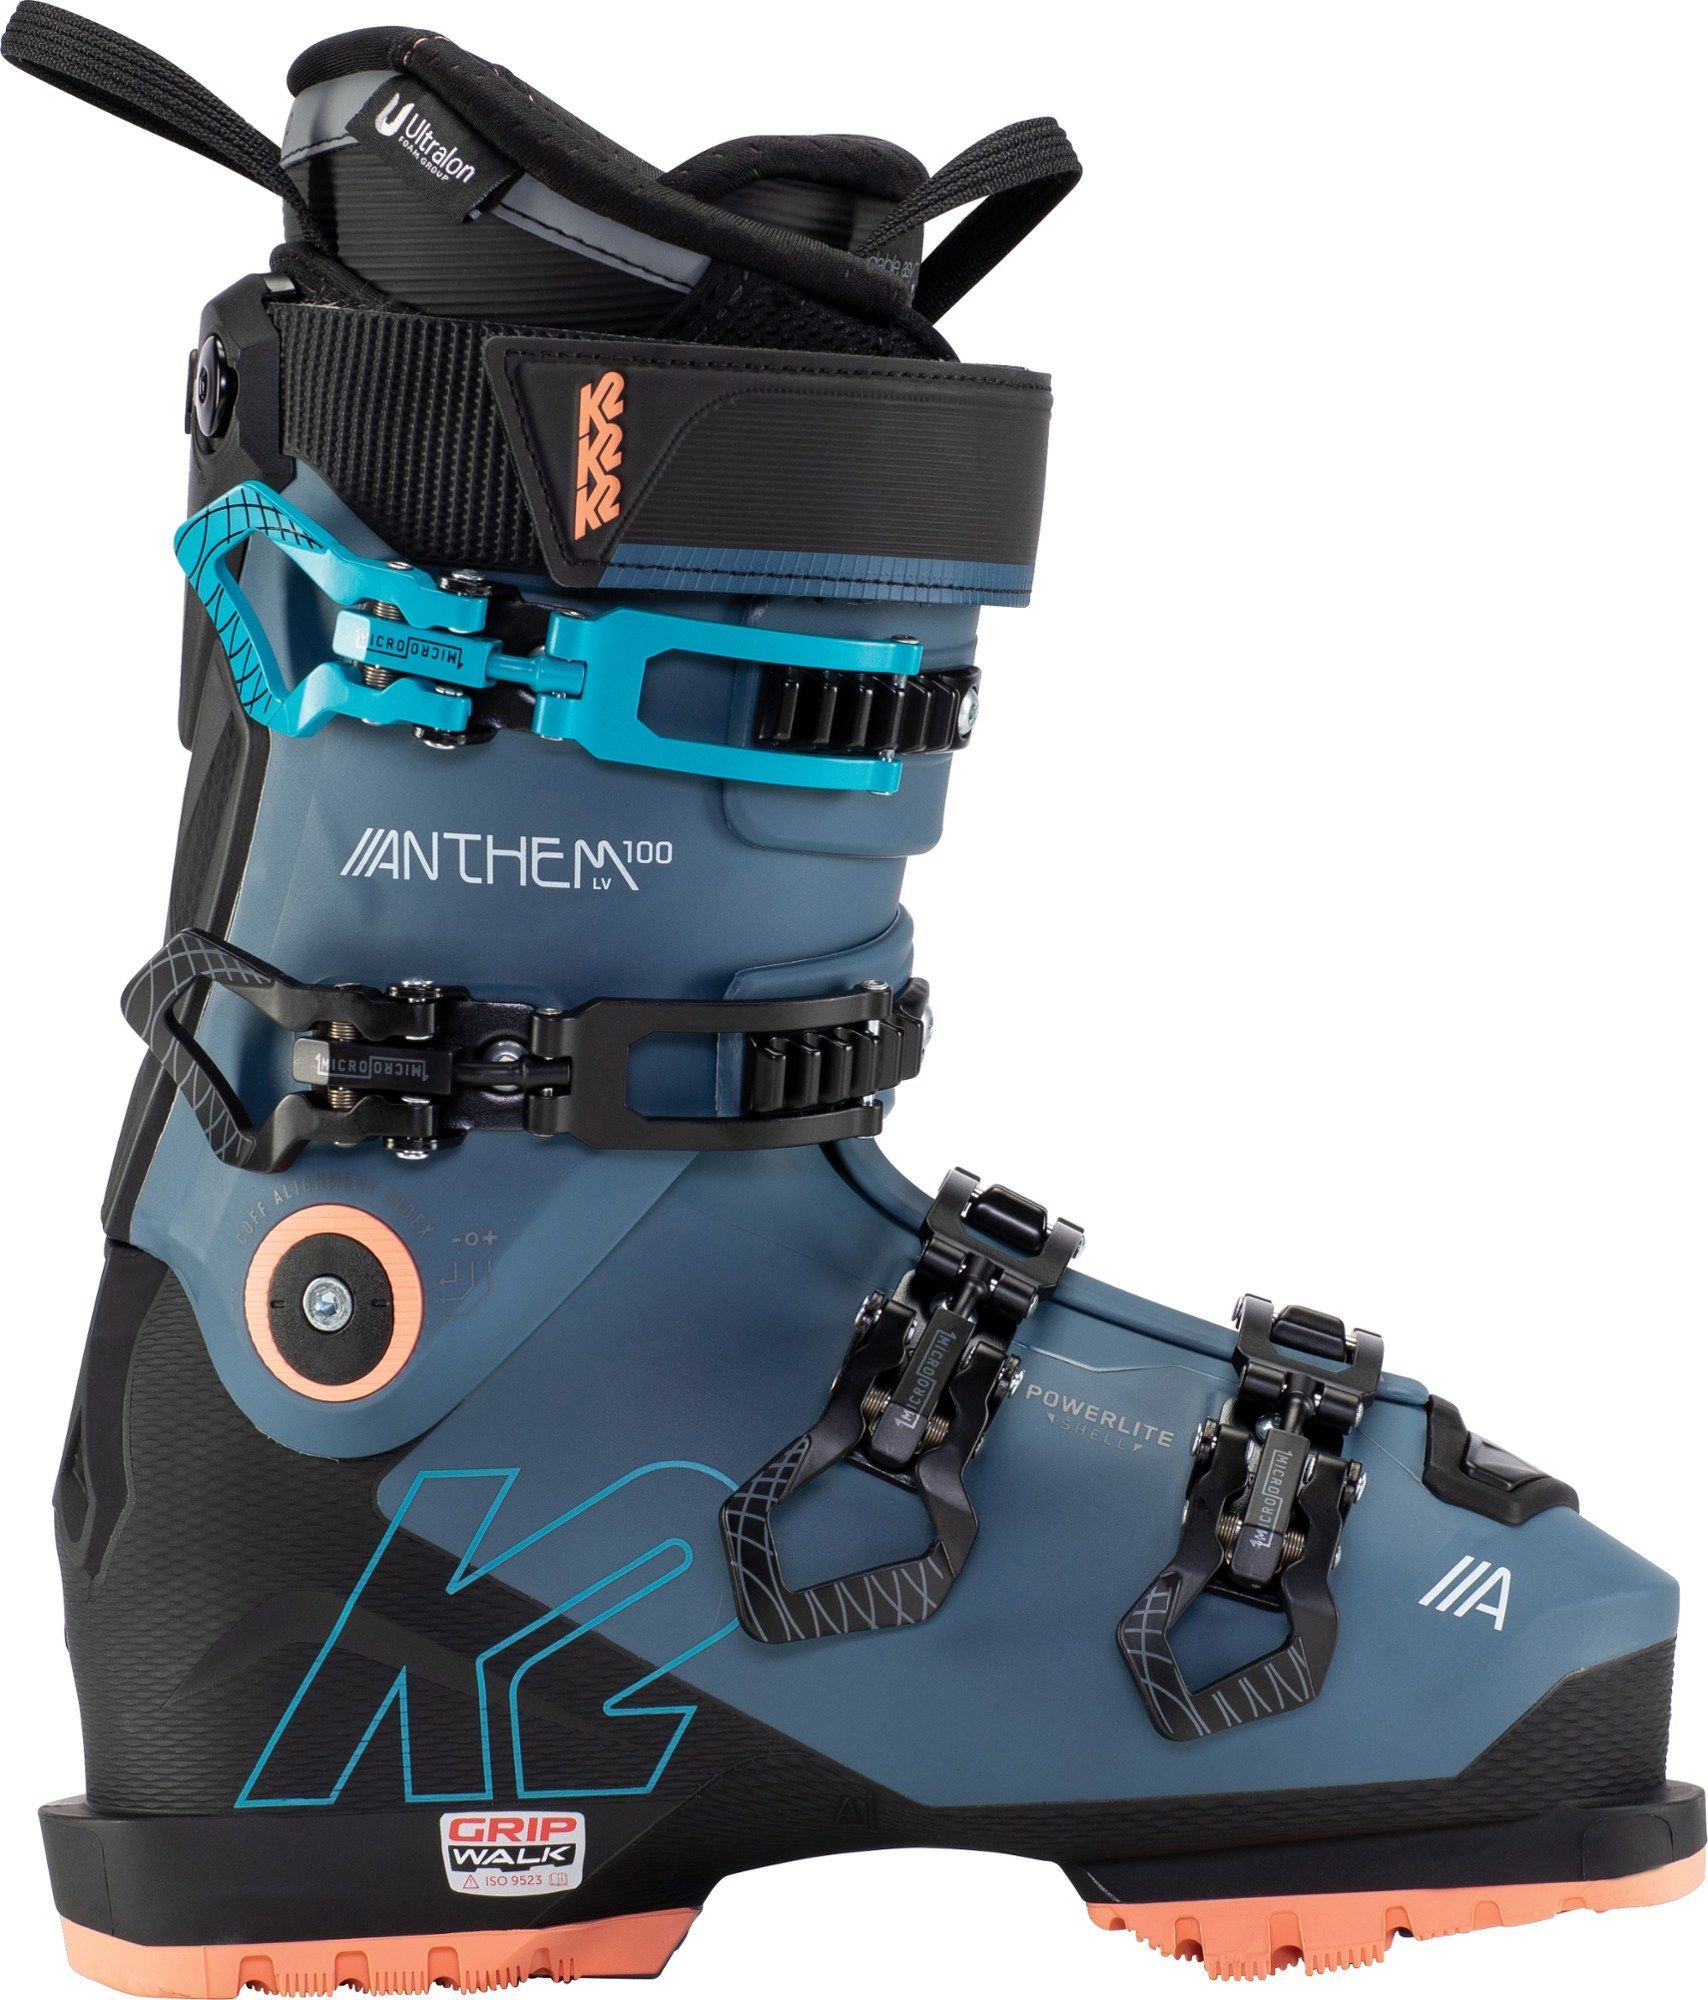 Built to deliver versatile  accommodating alpine performance  the women's K2 Anthem 100 LV ski boots have a precise  customizable fit without the bulky weight.